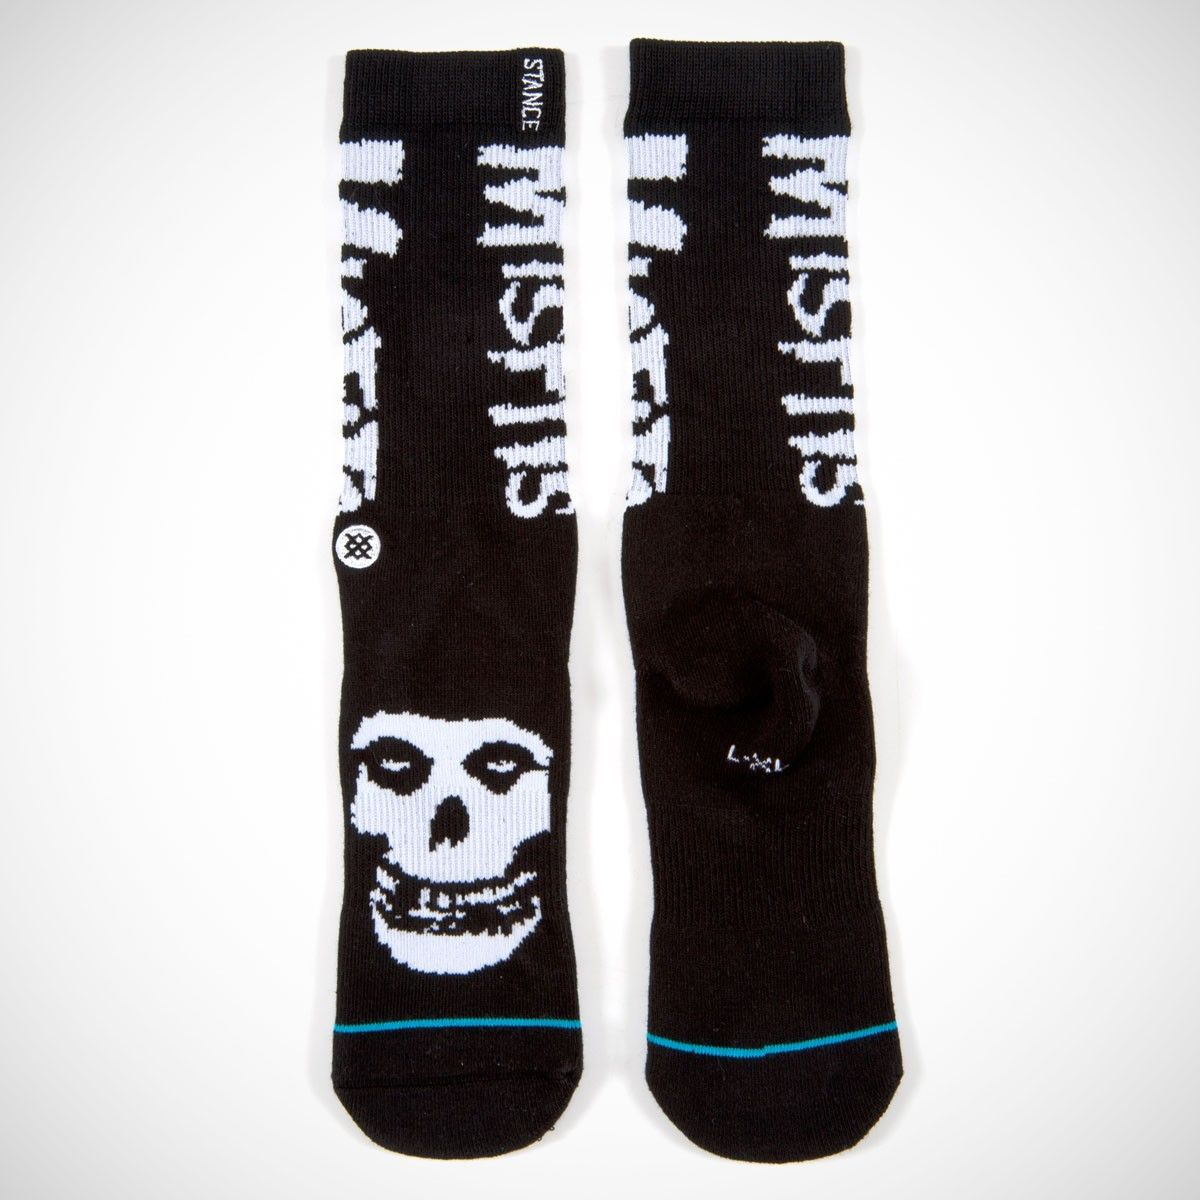 07c8859c8e skull boxer briefs - Google Search. Find this Pin and more on Men's Heavy  Metal Fashion ...